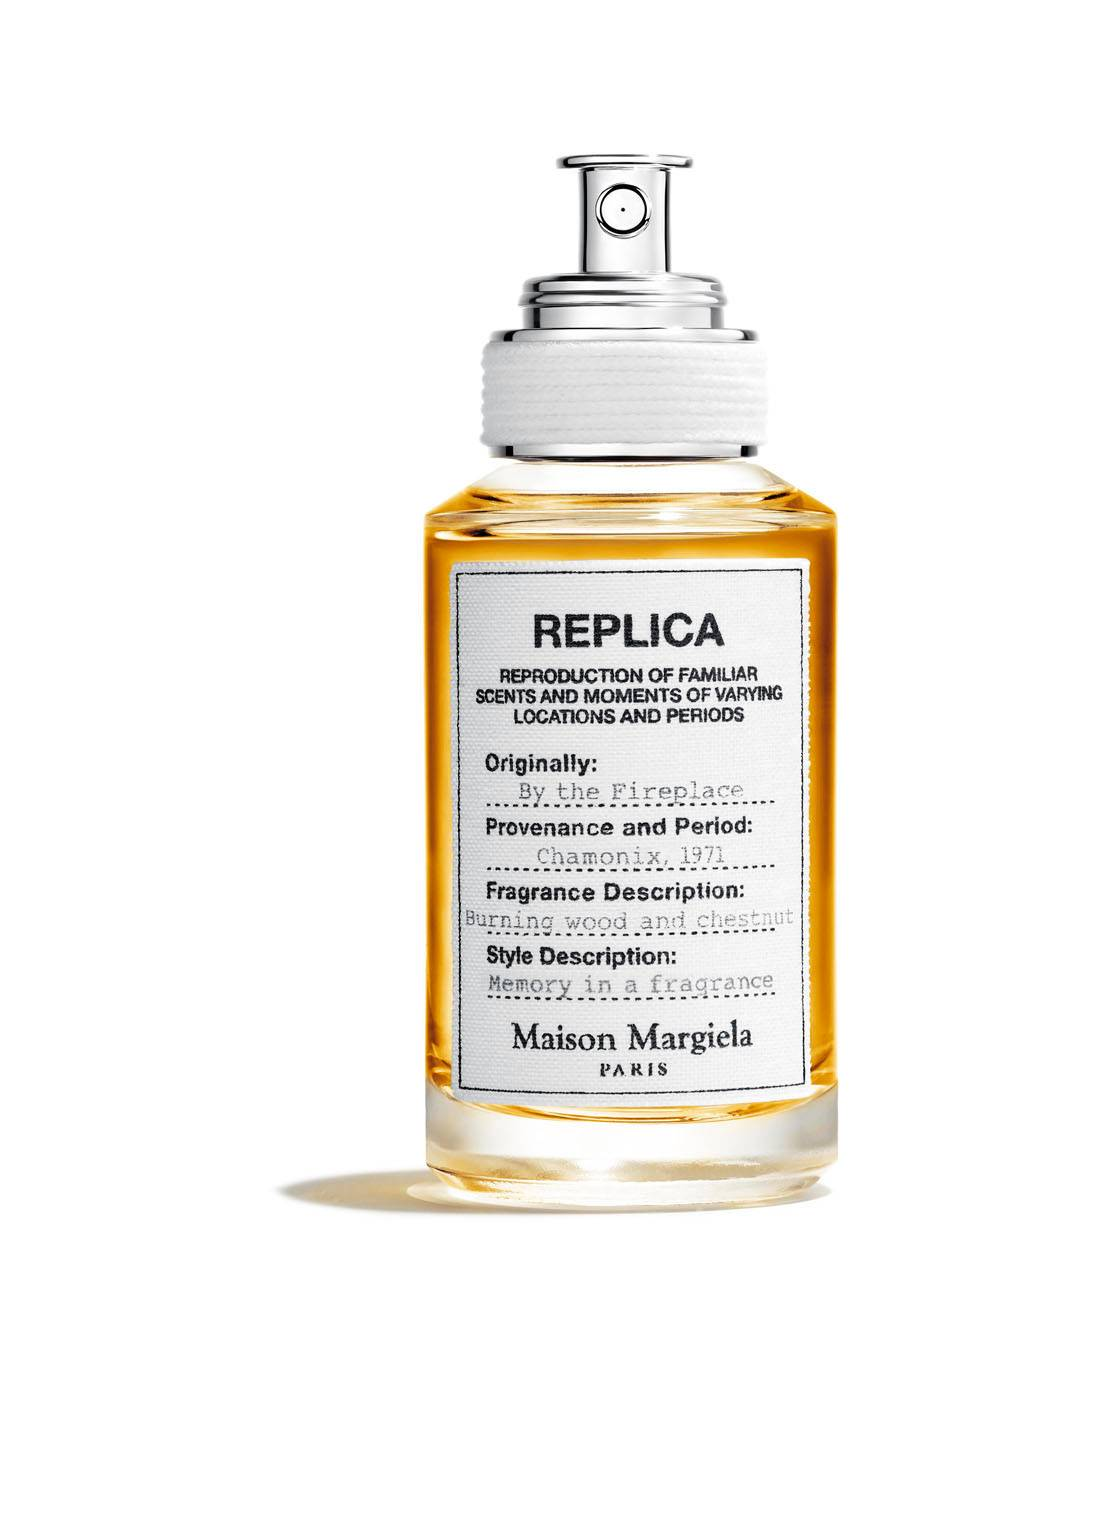 maison margiela REPLICA - Eau de Toilette By The Fireplace -